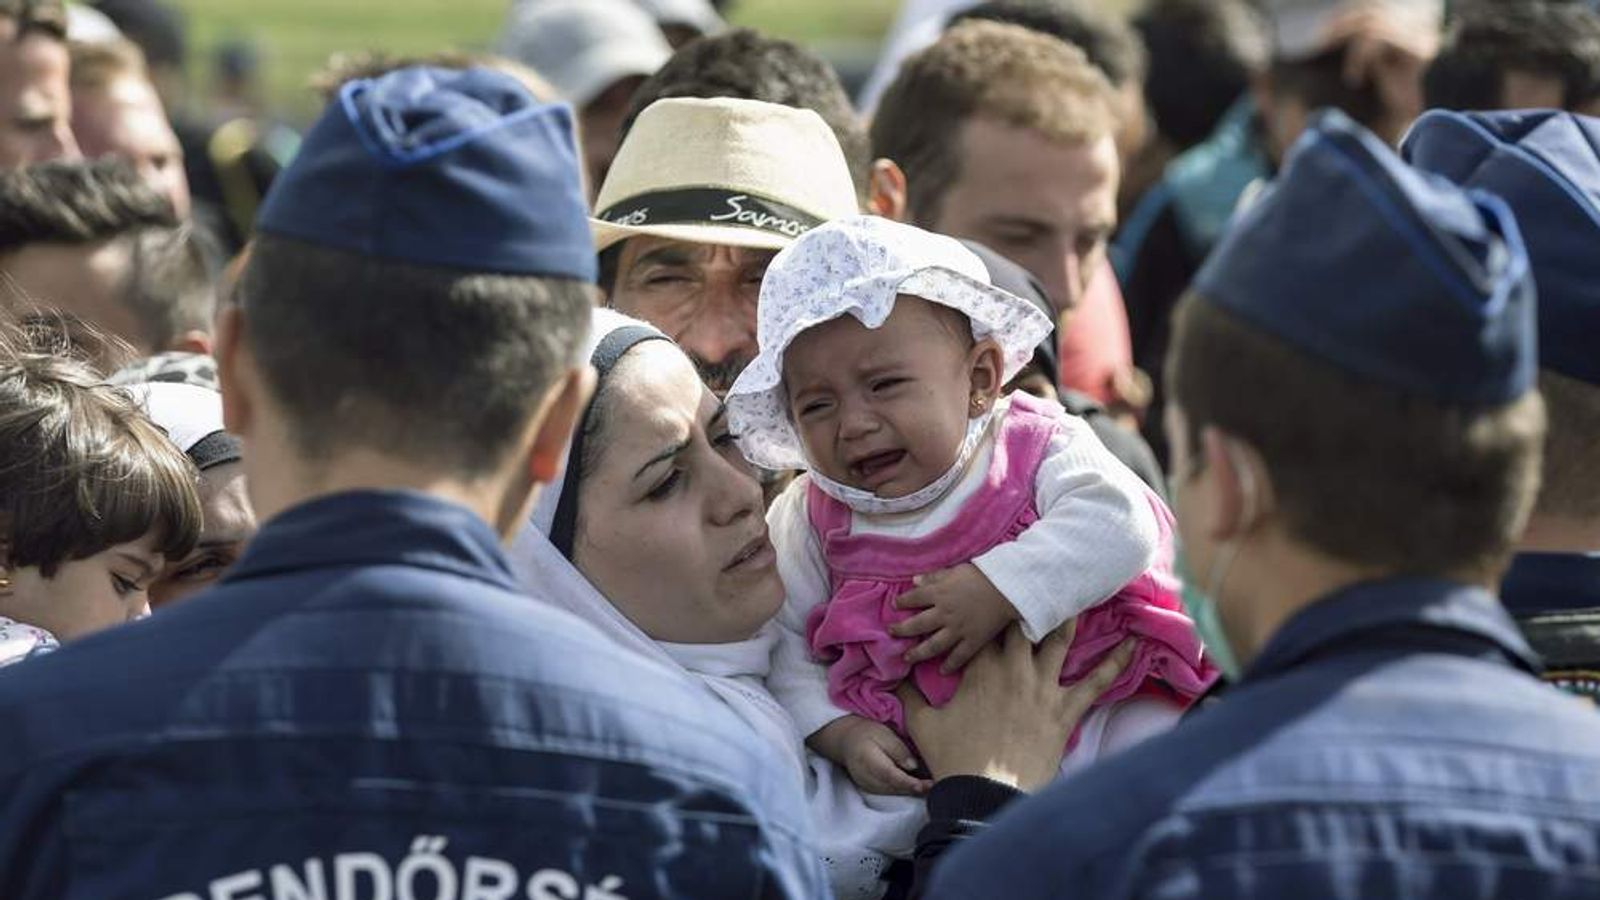 A migrant kisses a child who is crying as they stand in front of Hungarian police officers while waiting to board buses at a collection point in the village of Roszke, Hungary